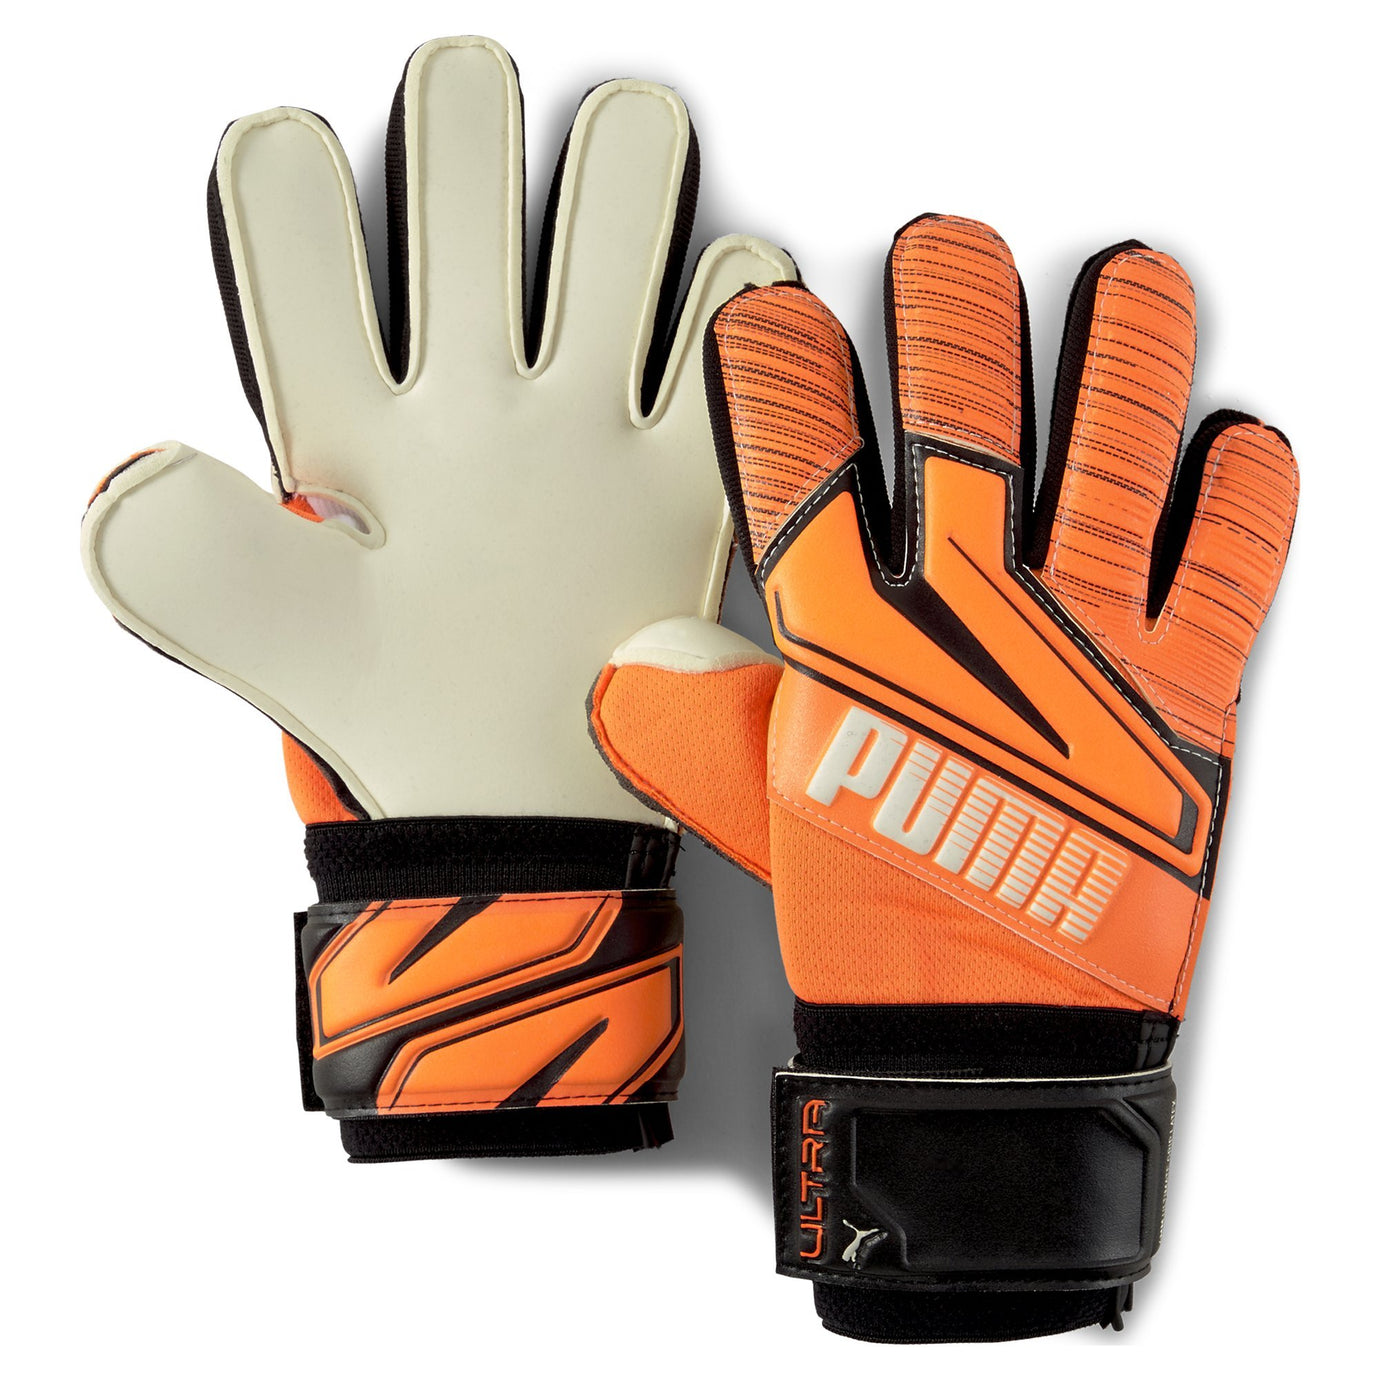 PUMA JR ULTRA GRIP 1 RC SHOCKING ORANGE